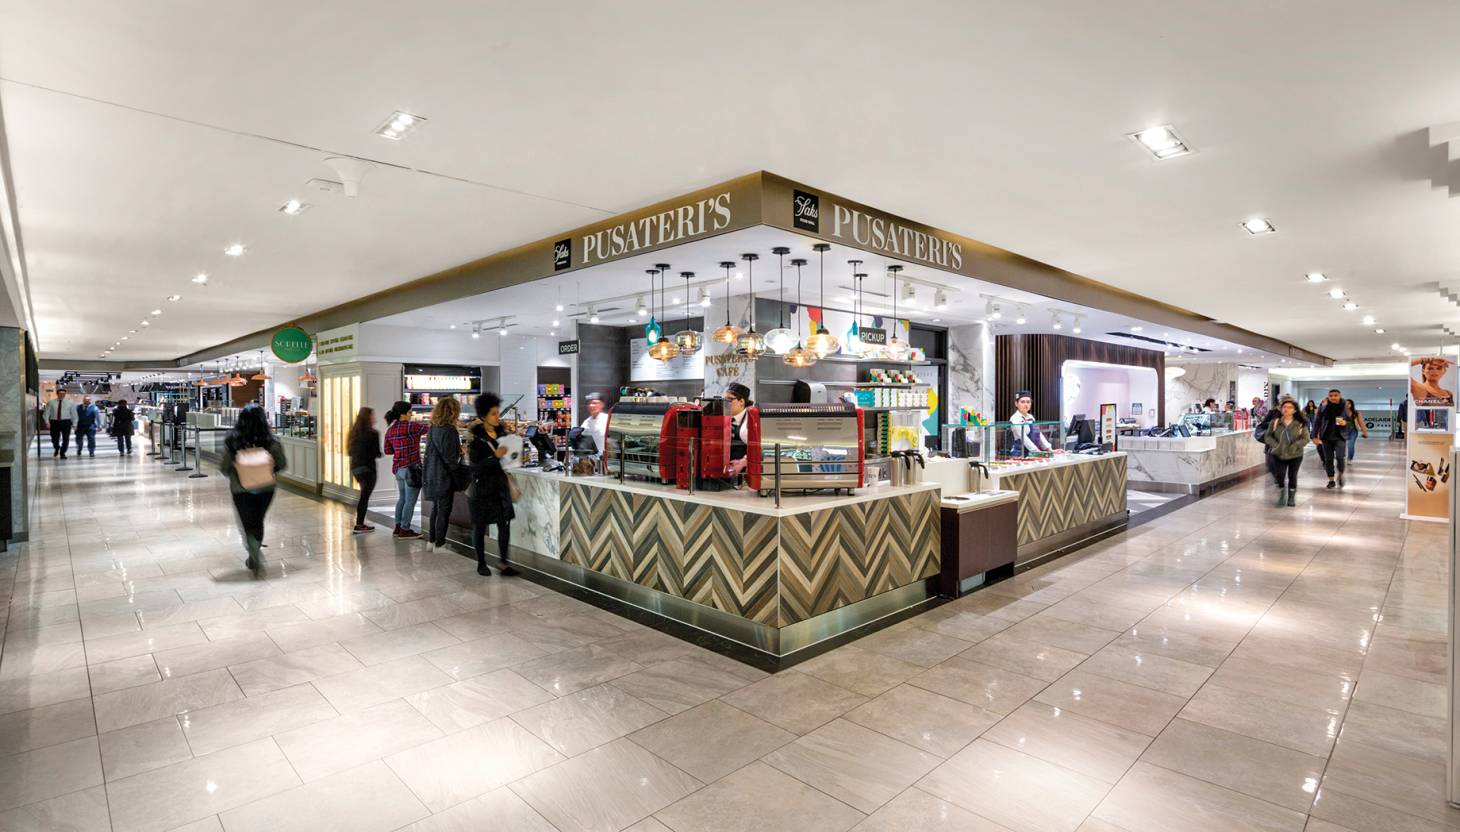 dde7910d Retail Store Design Winner, Small Format The Saks Food Hall by Pusateri's  is located in the heart of downtown Toronto. The iconic space features a  variety ...